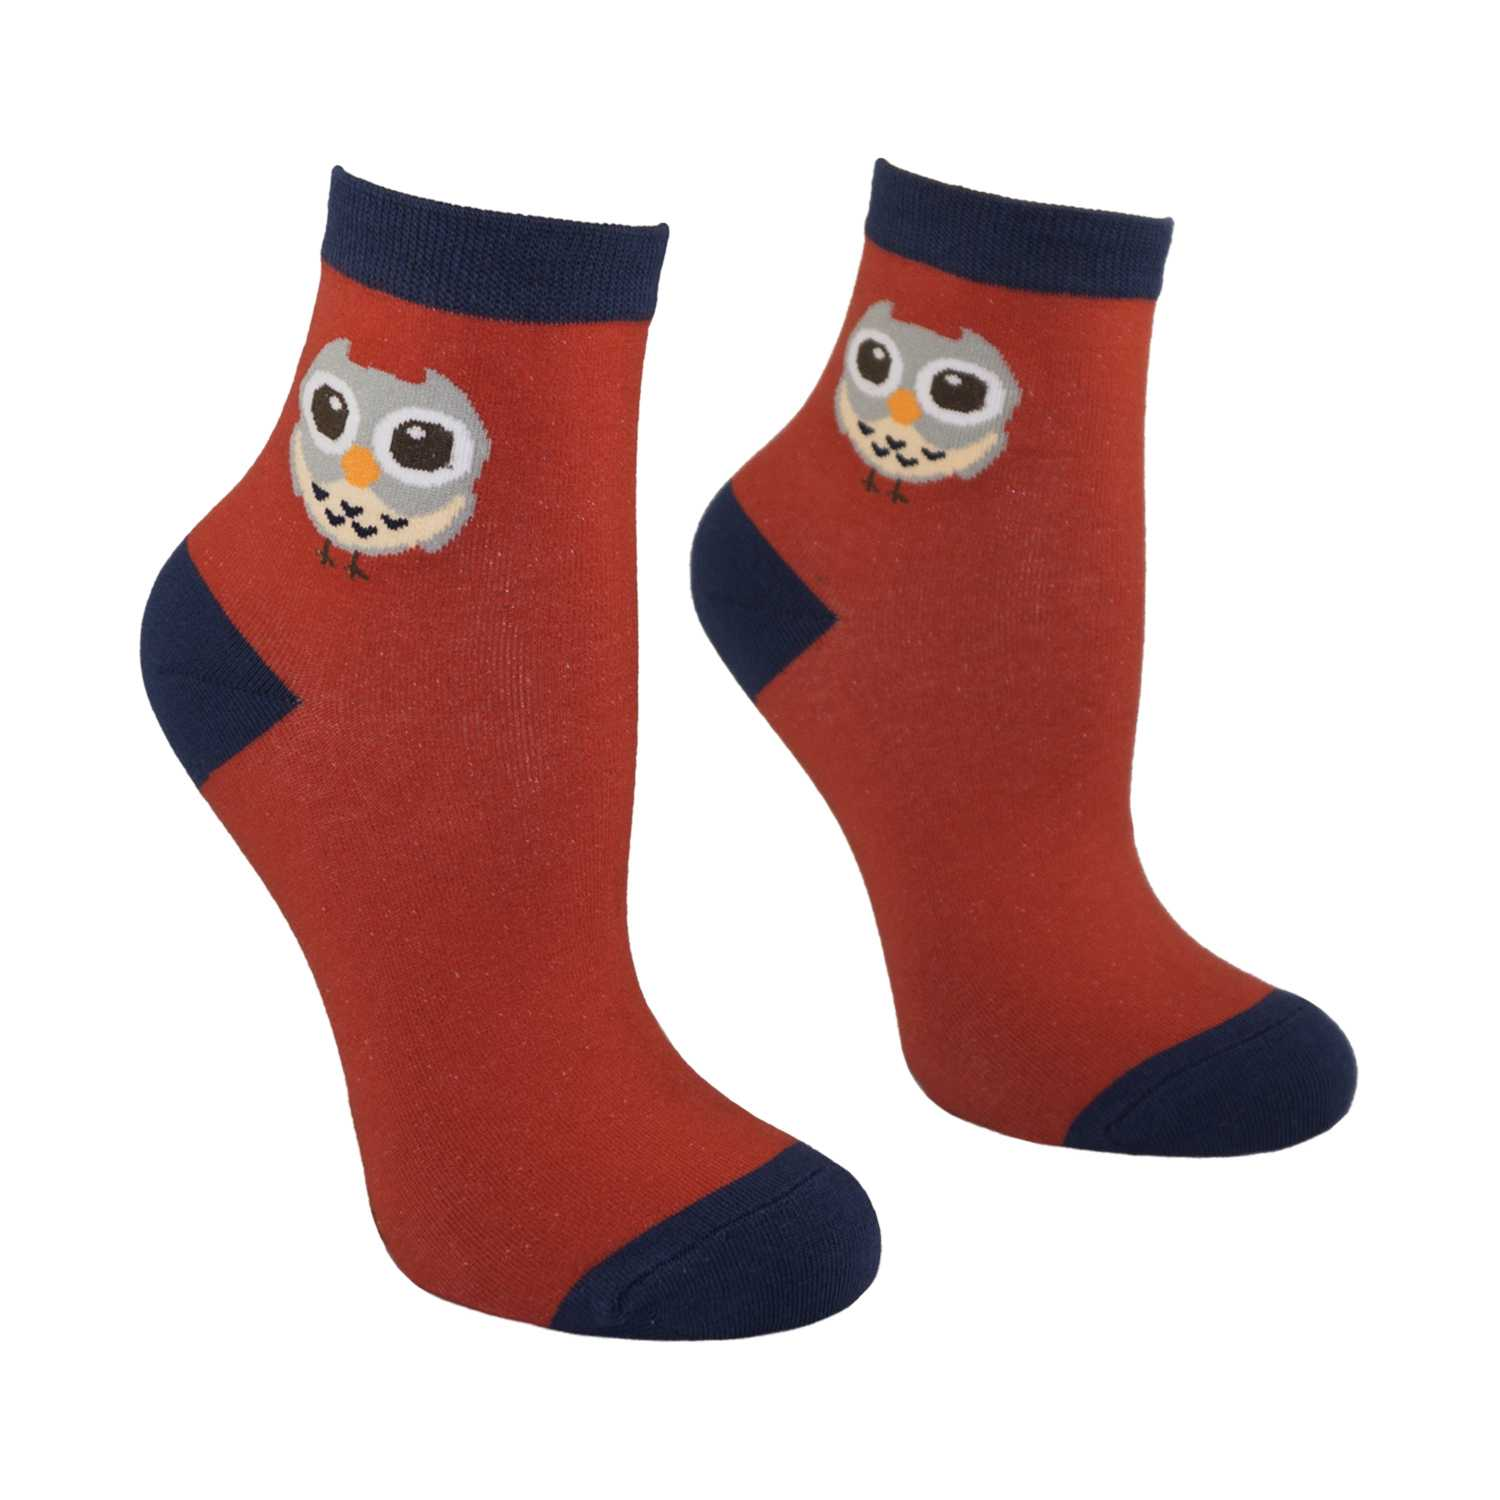 Women's Owl Design Crew Socks - Red - Zestique